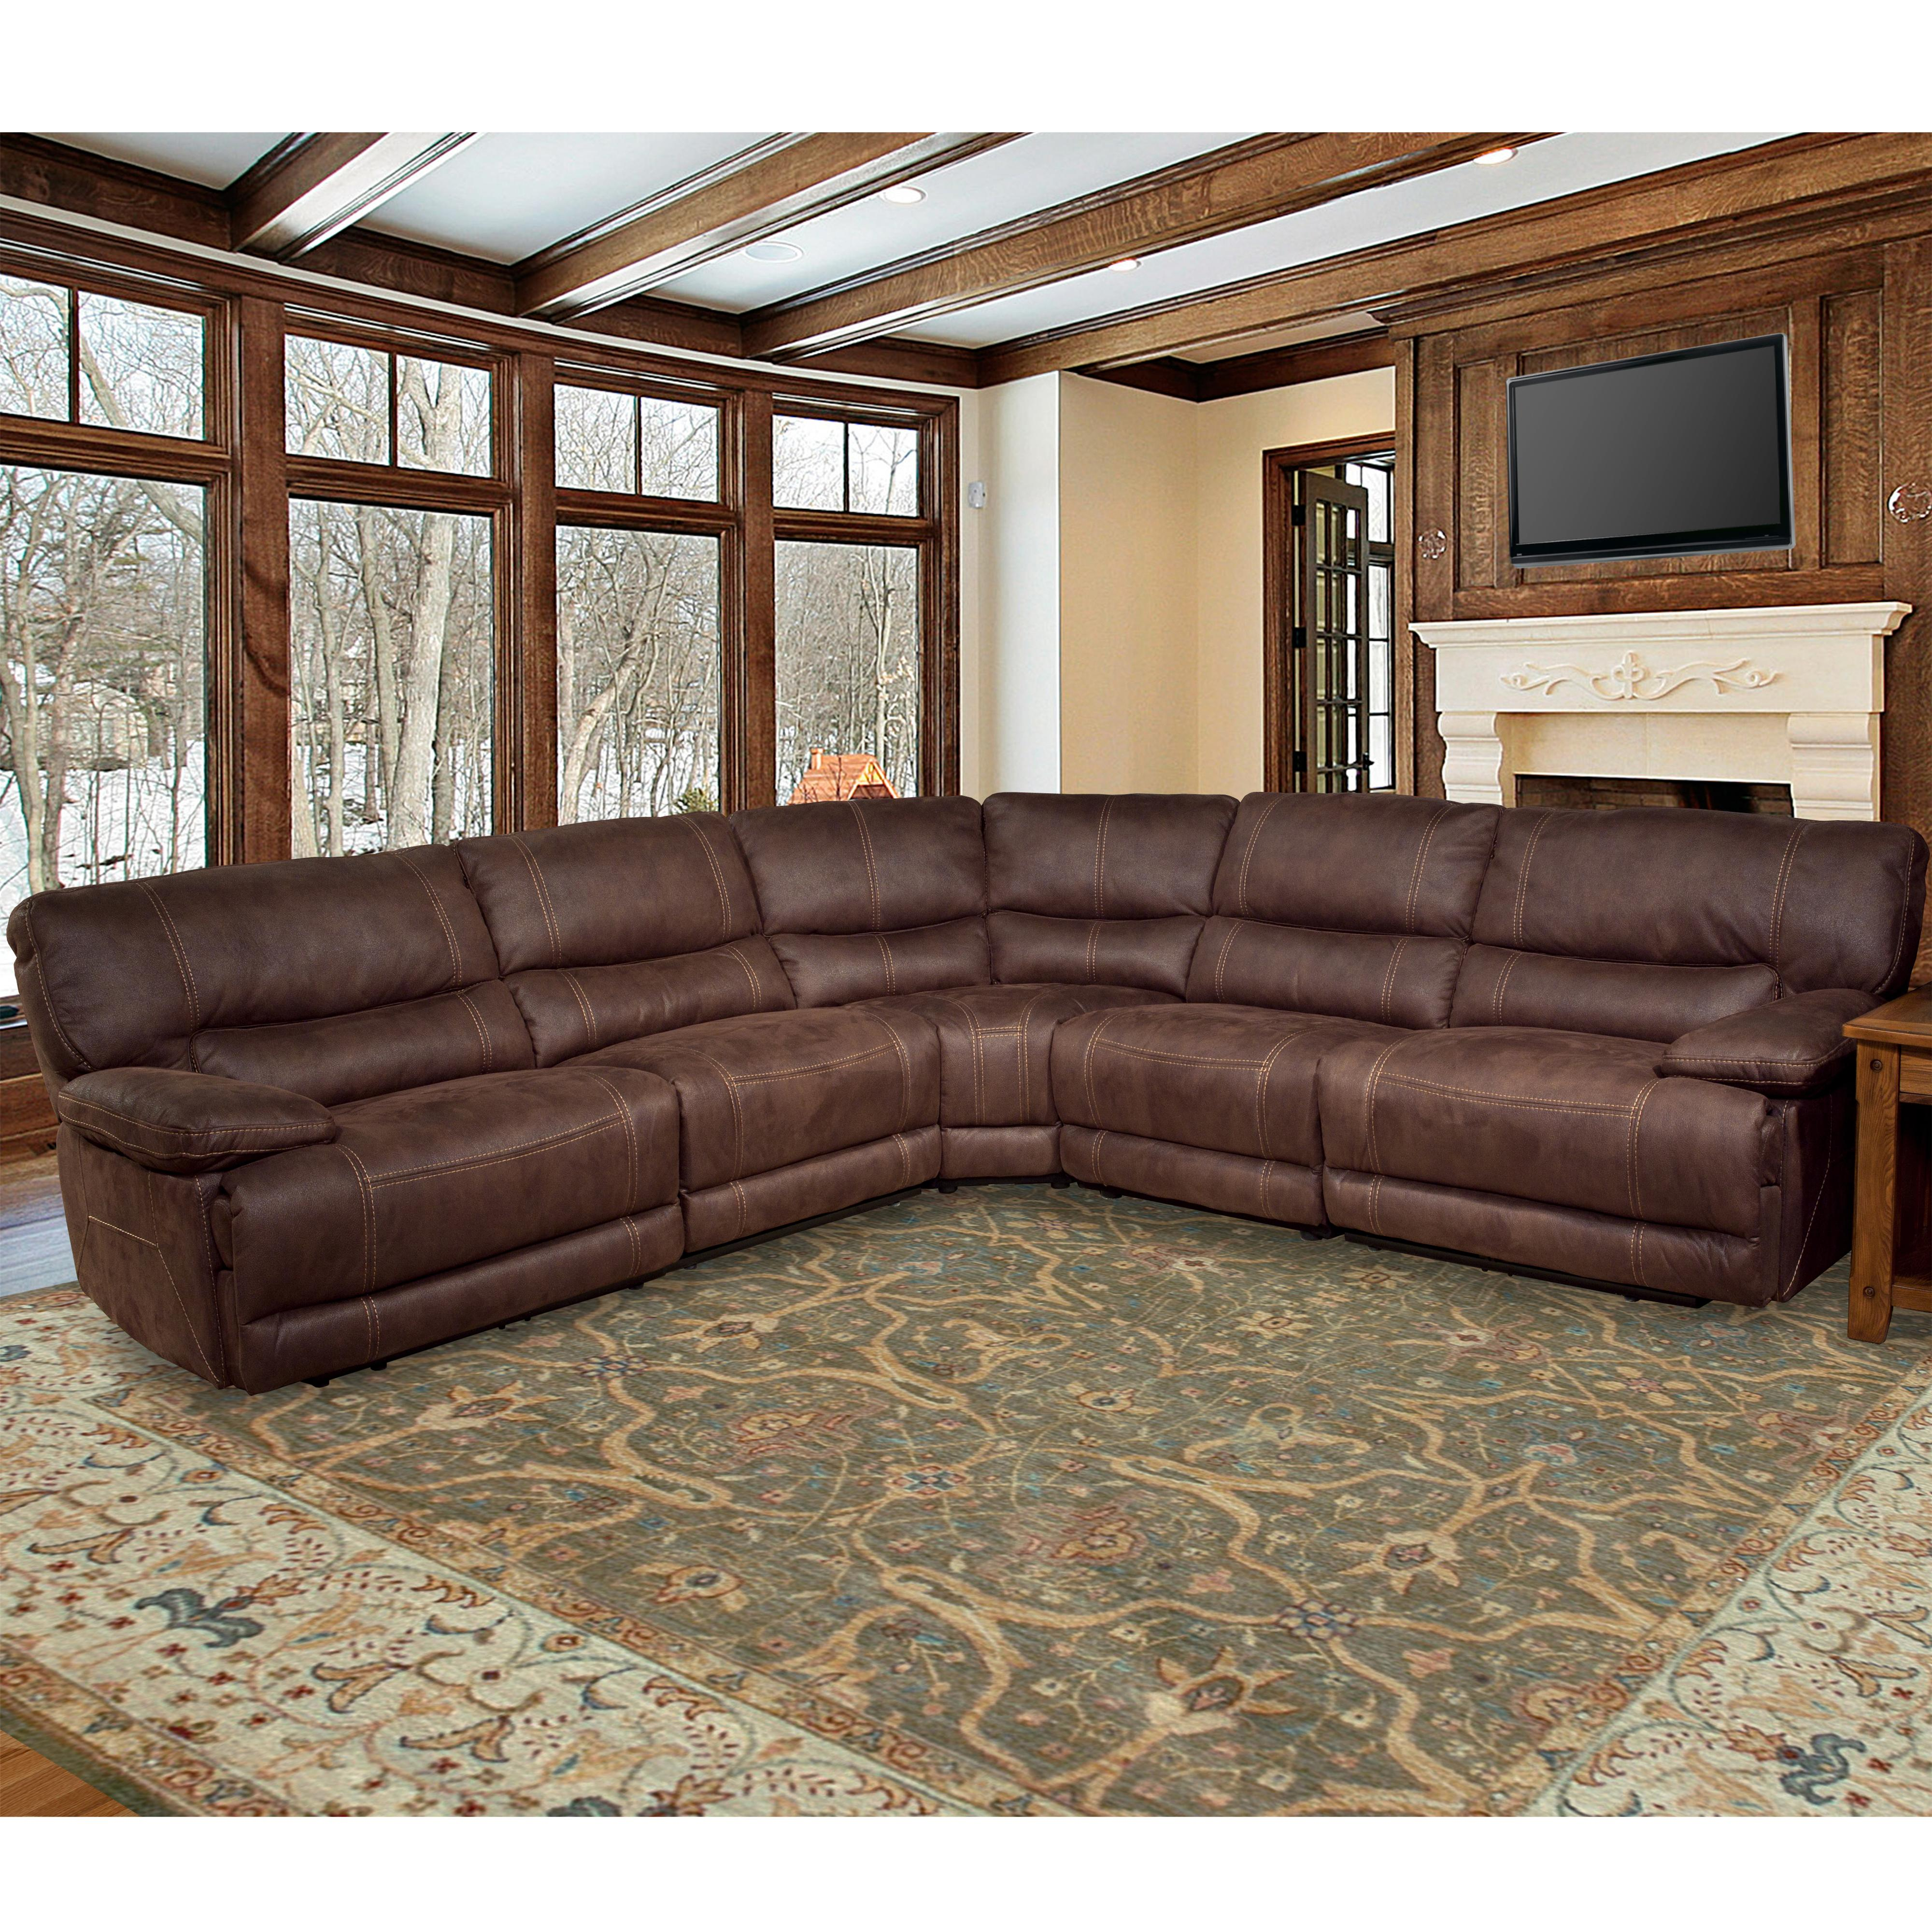 Parker Living Pegasus Power Reclining Sectional Sofa - Item Number: MPEG-PACKN-DK